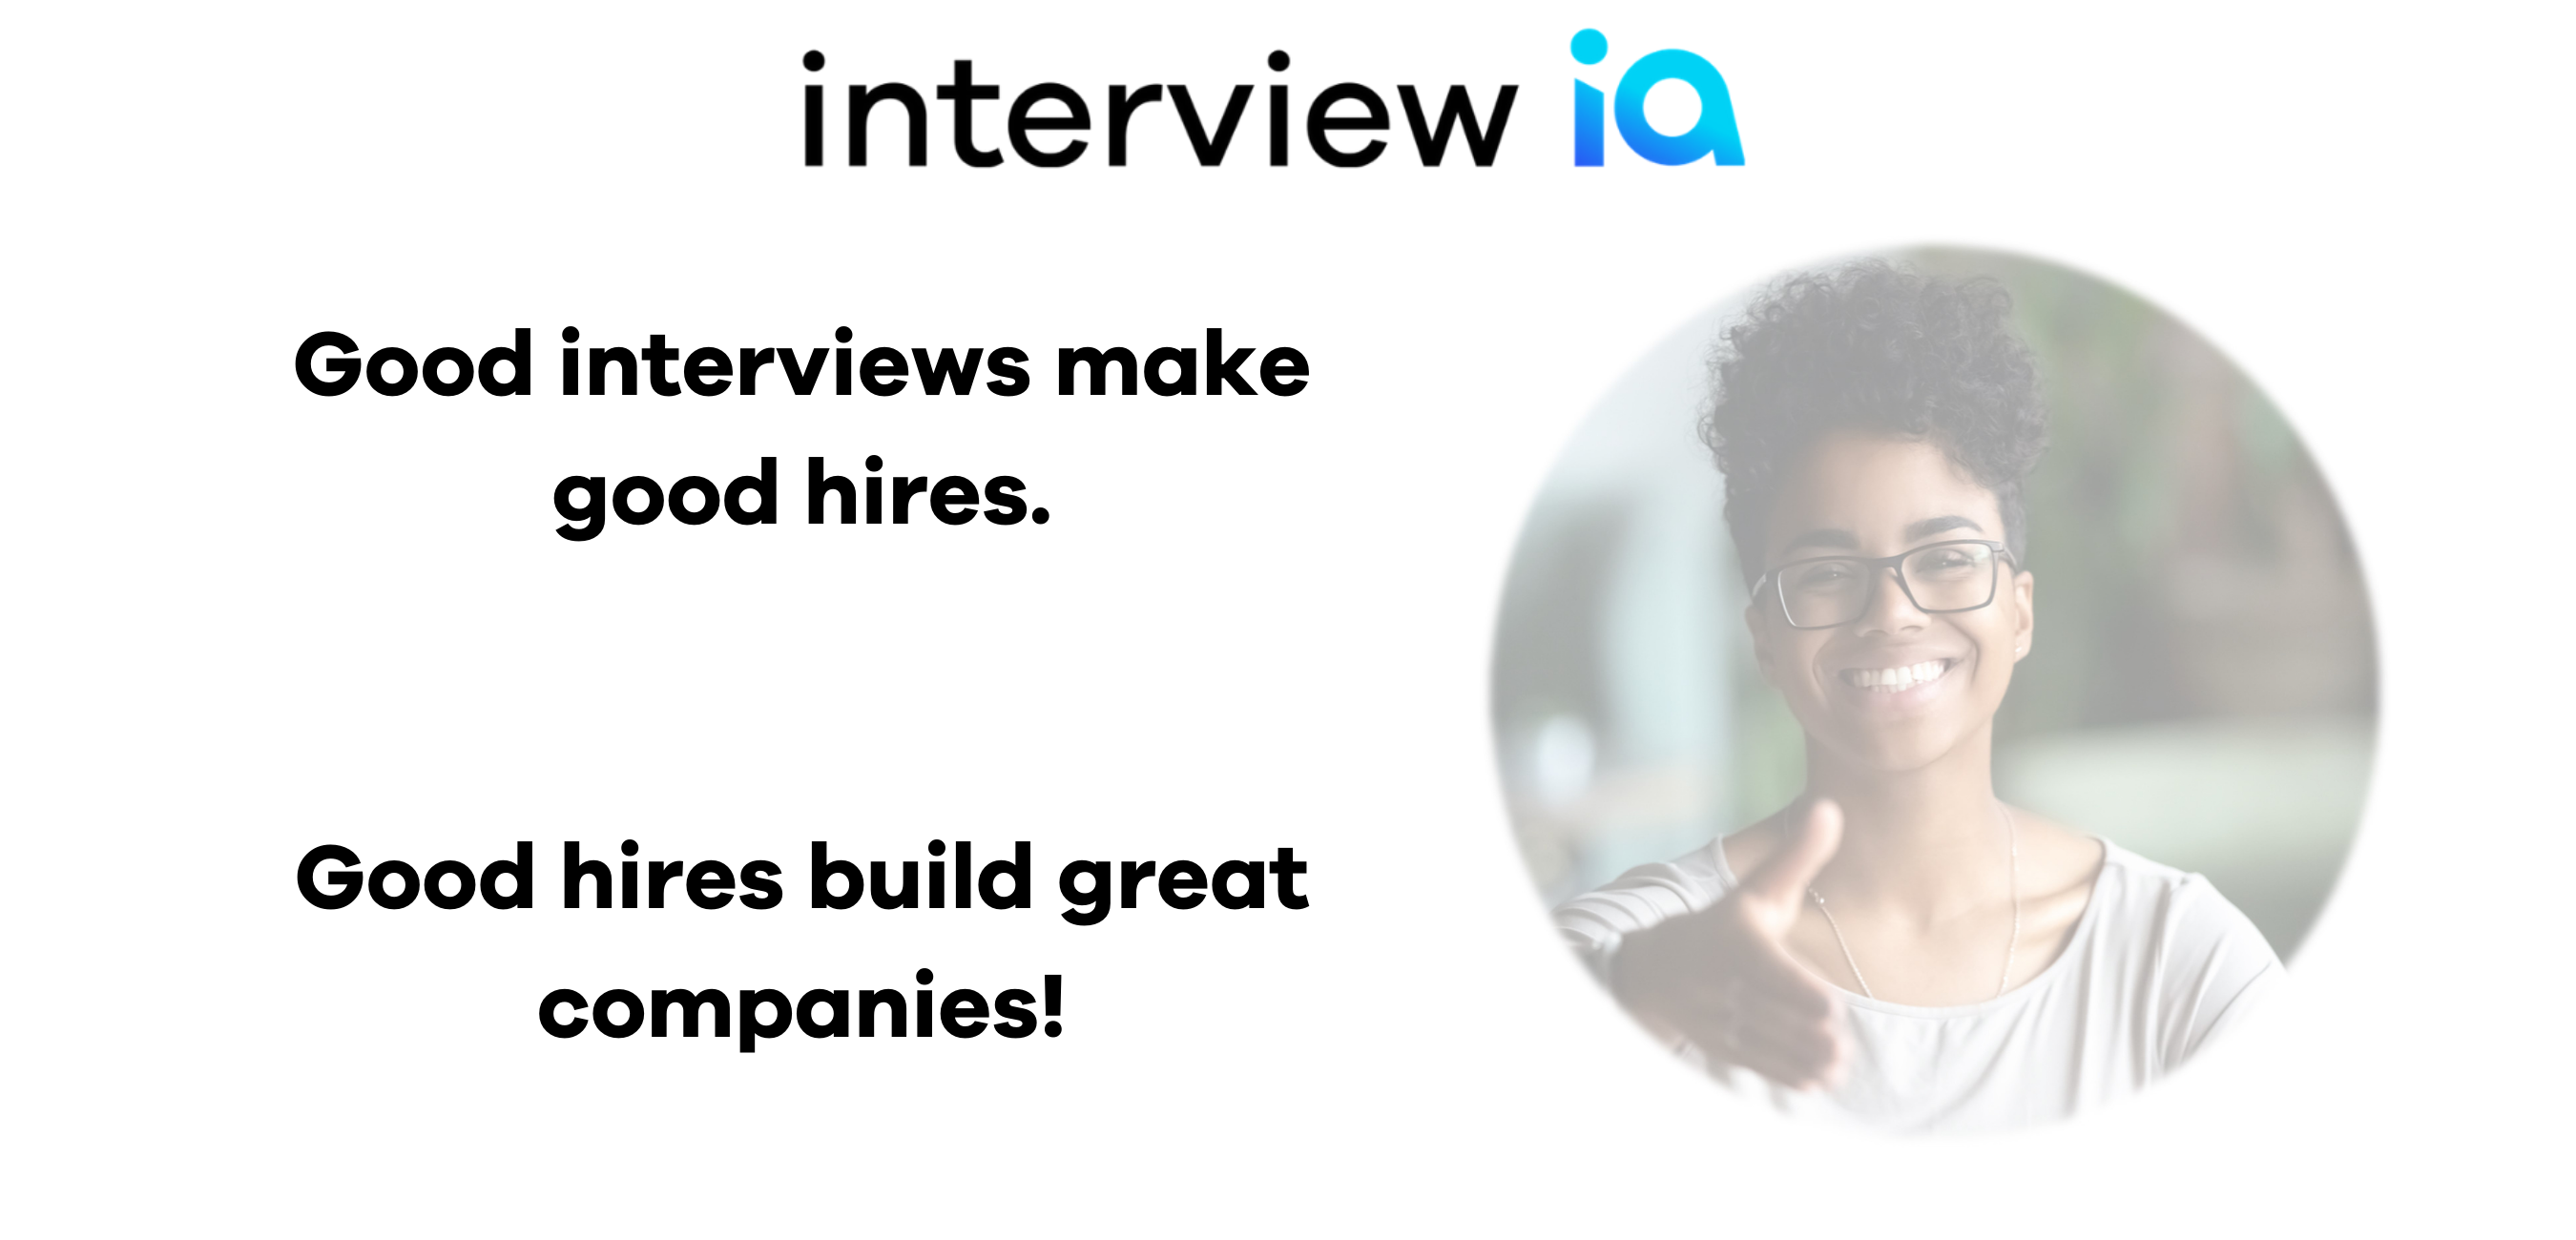 Why interviewIA